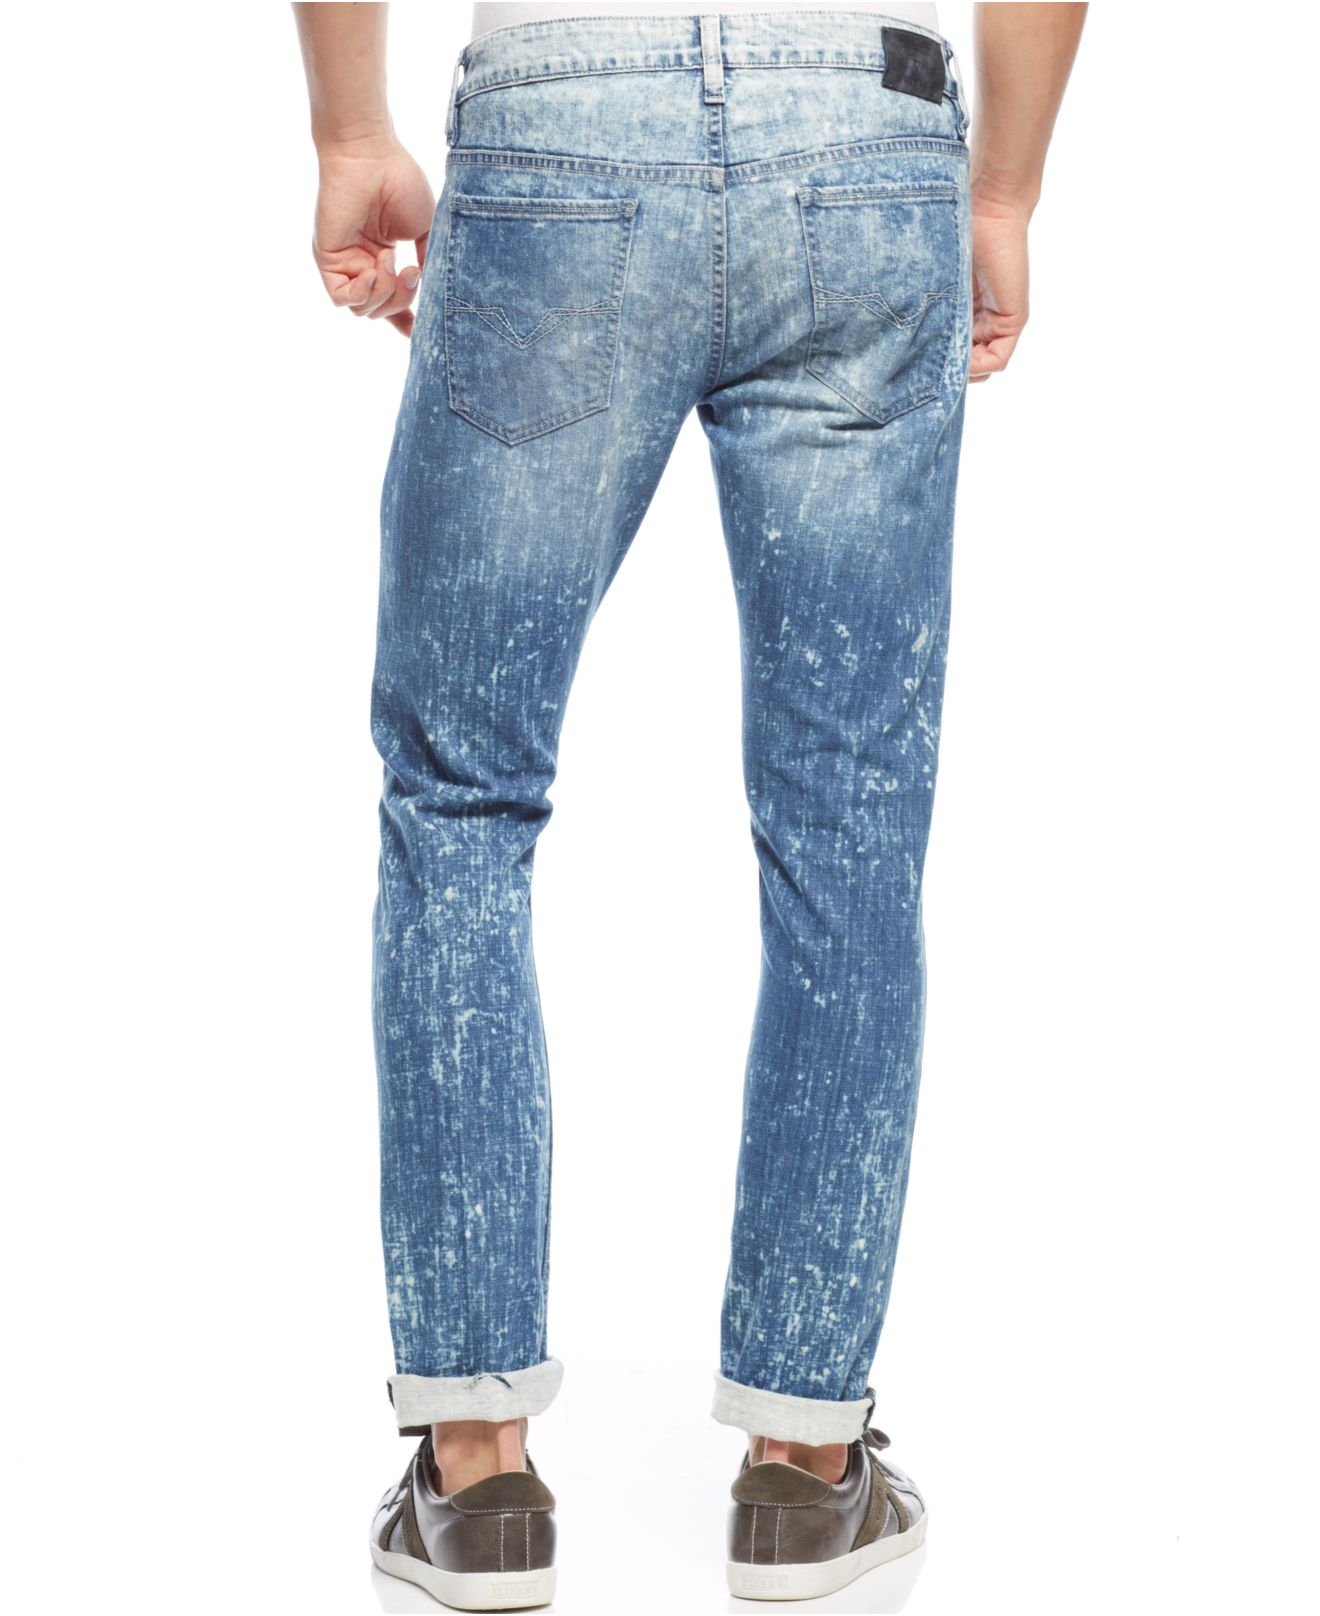 Guess Bootcut Jeans For Men